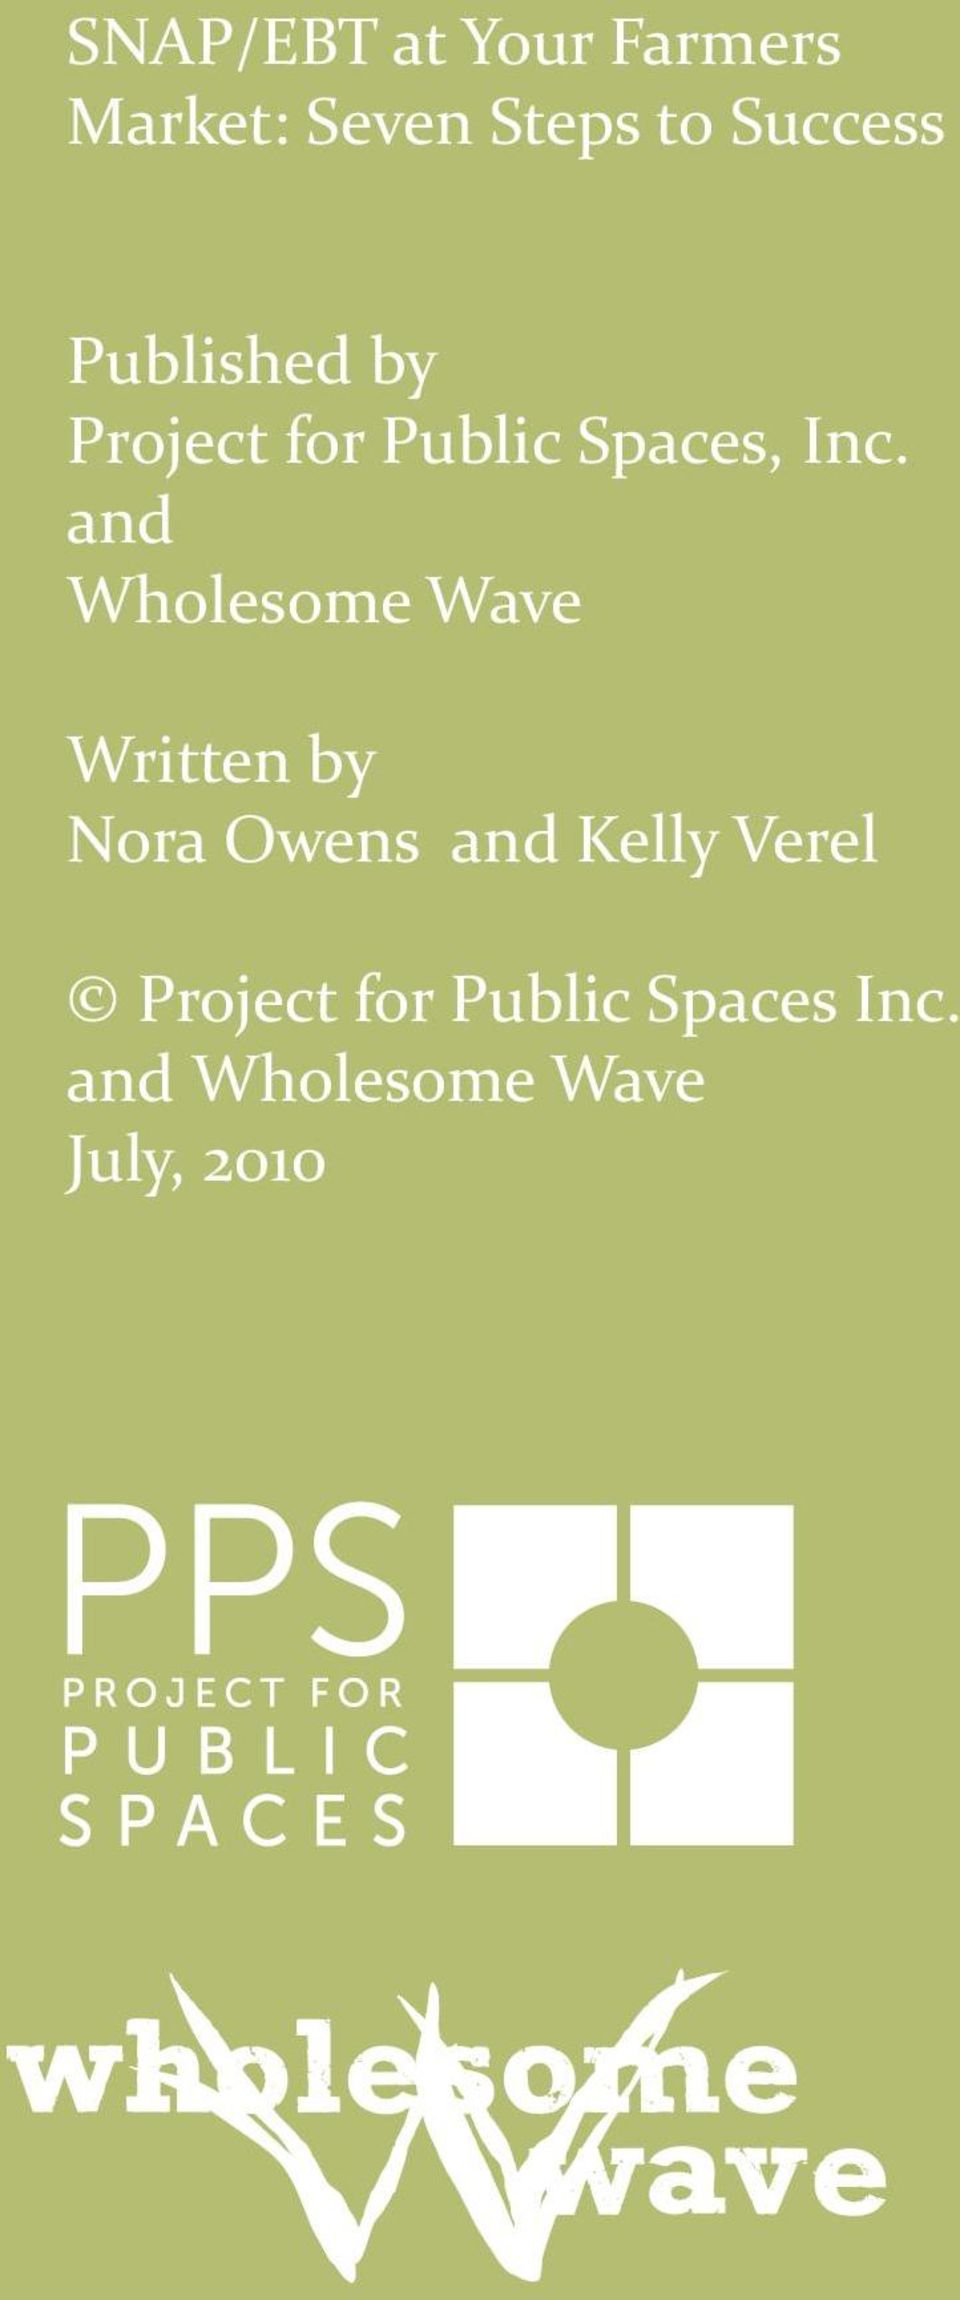 and Wholesome Wave Written by Nora Owens and Kelly